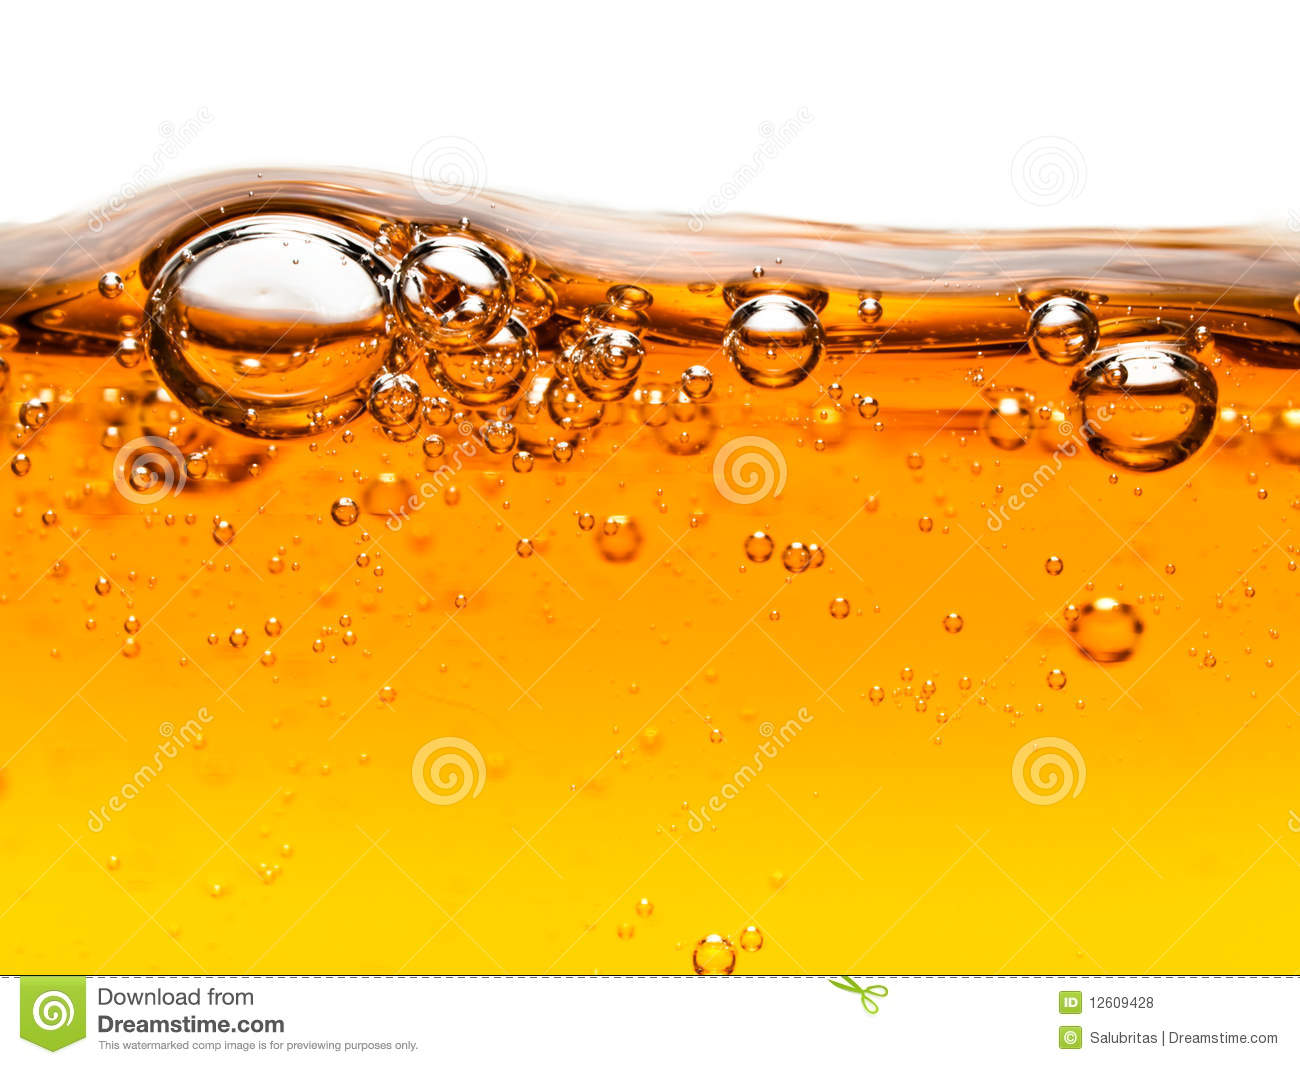 Bubbles In Orange Liquid Soap Royalty Free Stock Photos Math Wallpaper Golden Find Free HD for Desktop [pastnedes.tk]